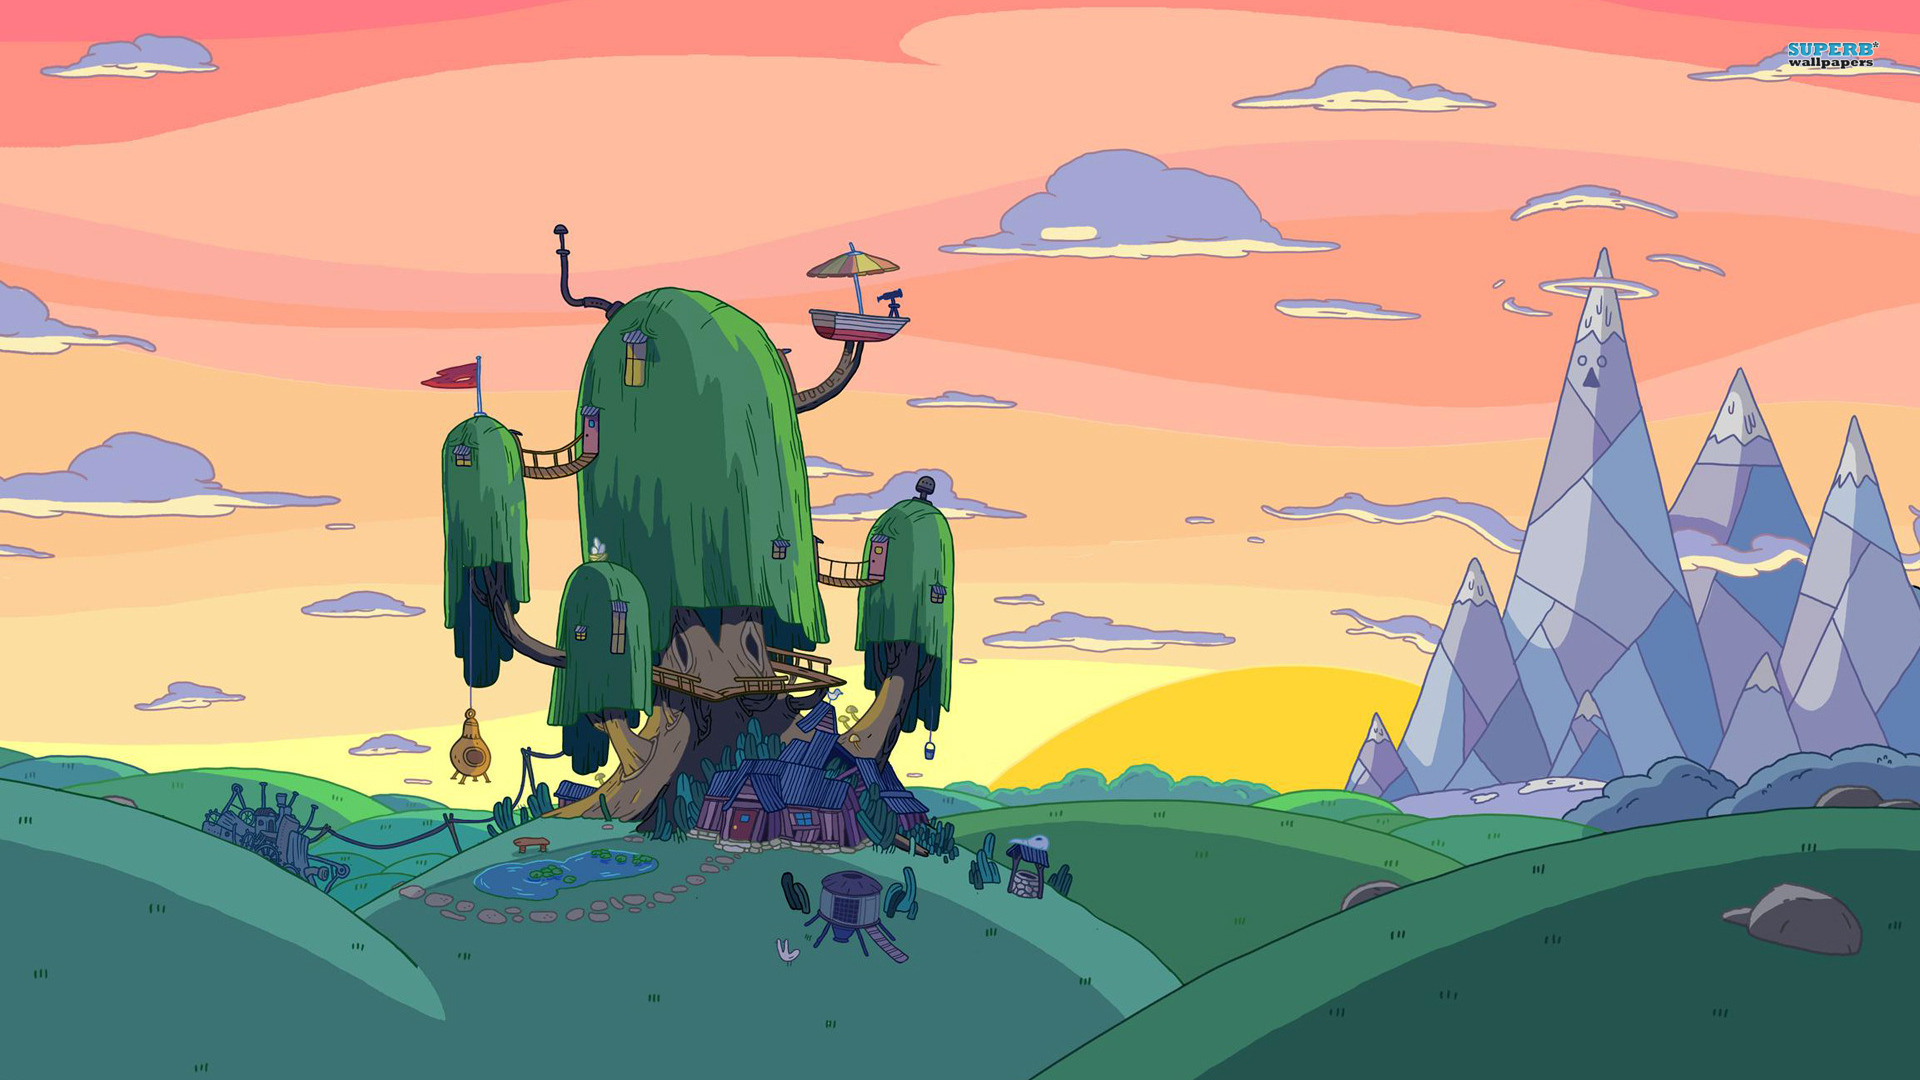 Adventure Time wallpaper 1920x1080